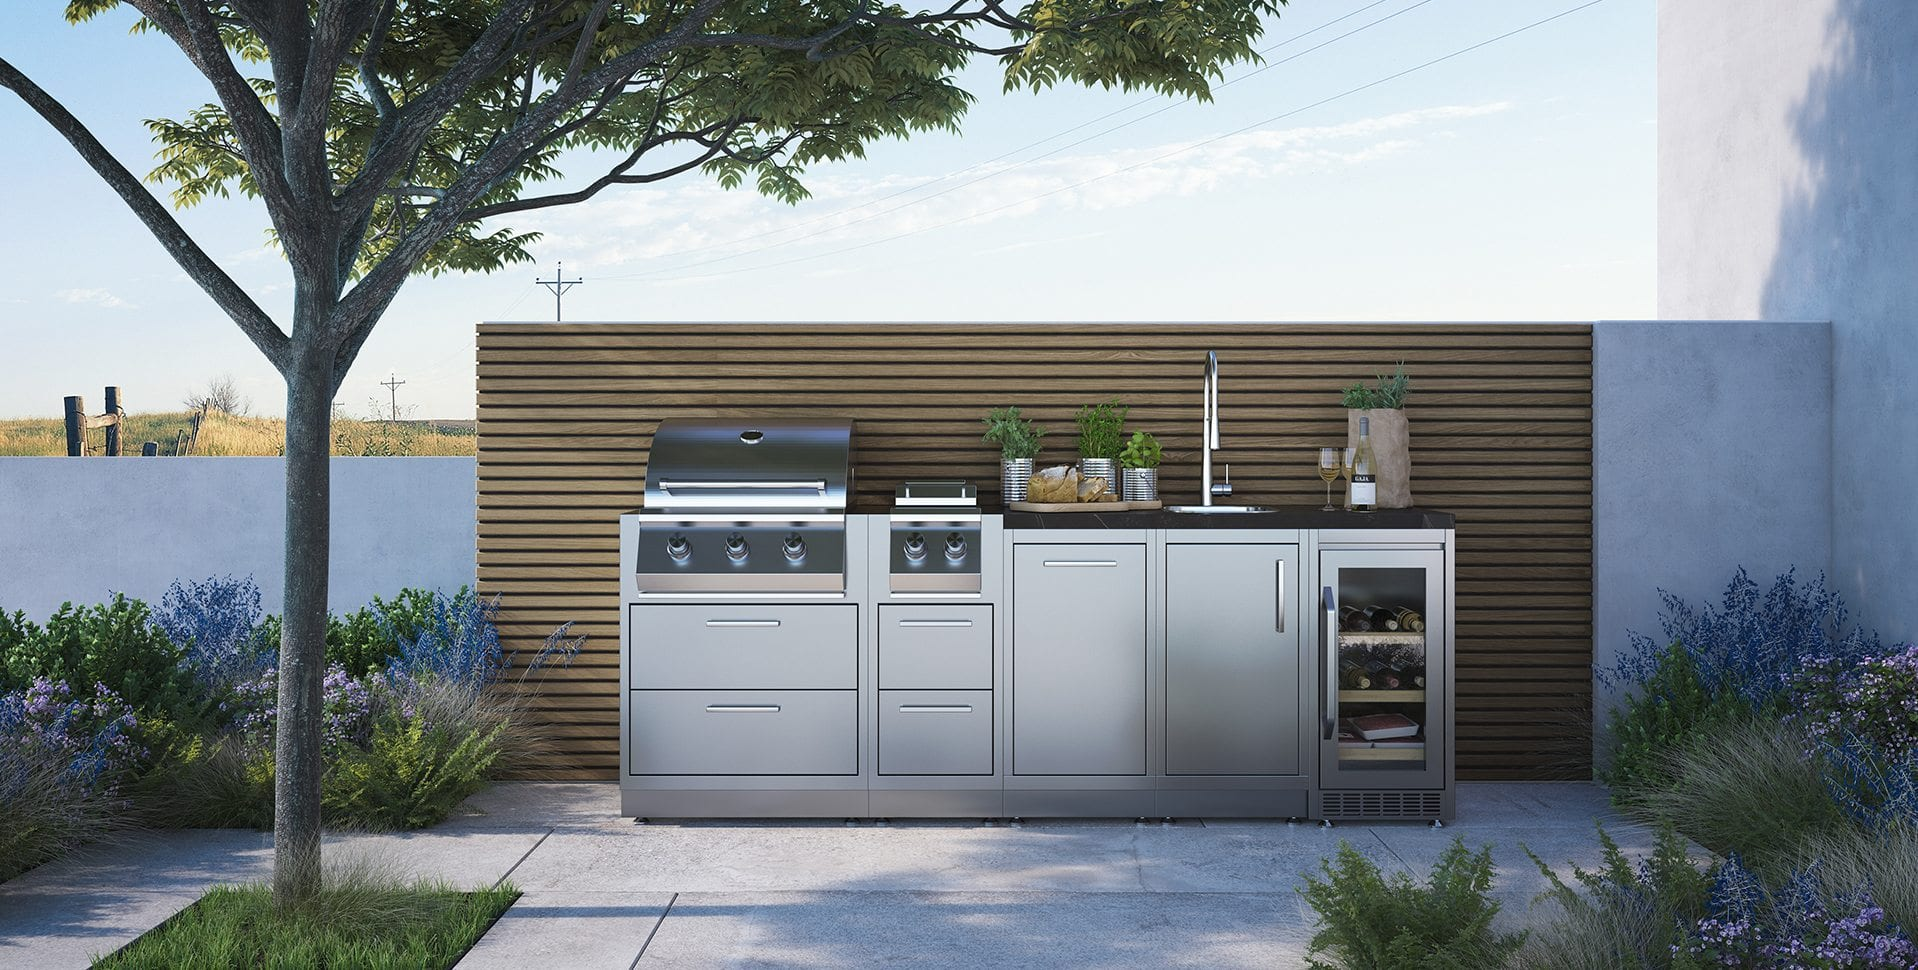 Maayan-Golan_Architectural-Visualization_product-visualization_outdoor-kitchen_grilltown_10